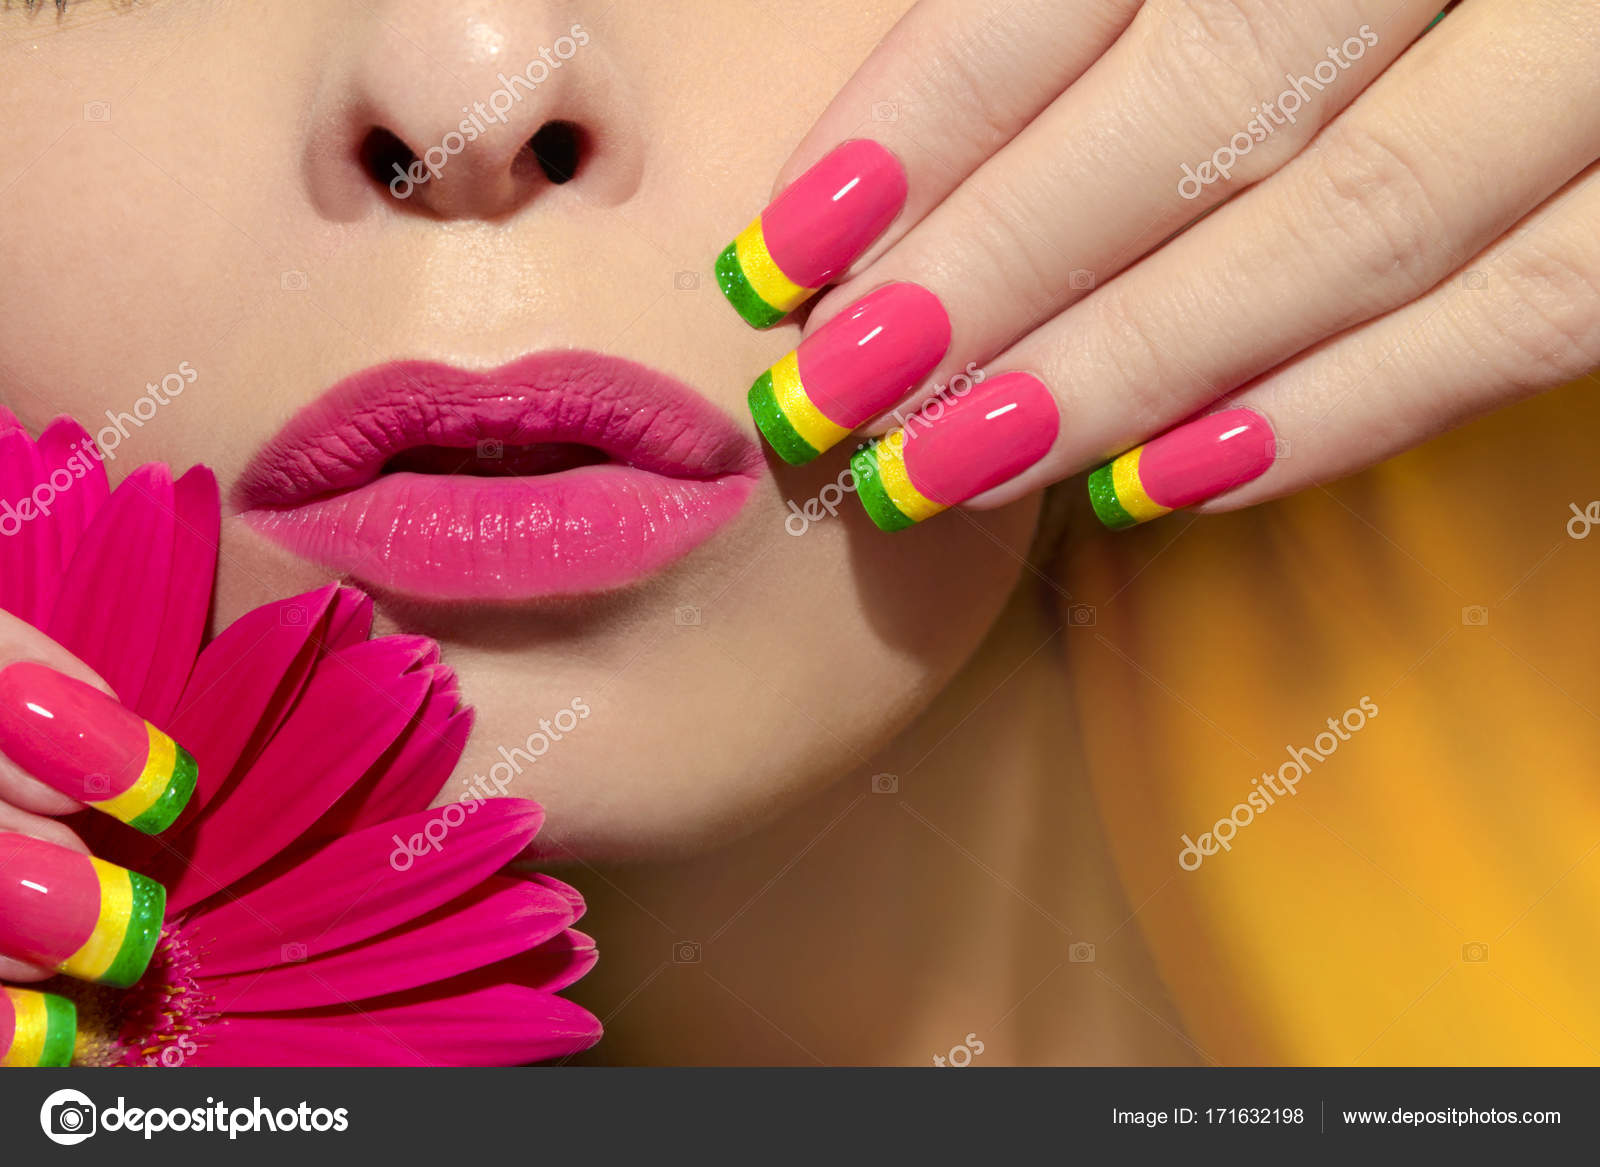 Forum on this topic: How to Do a Multicolored French Manicure, how-to-do-a-multicolored-french-manicure/